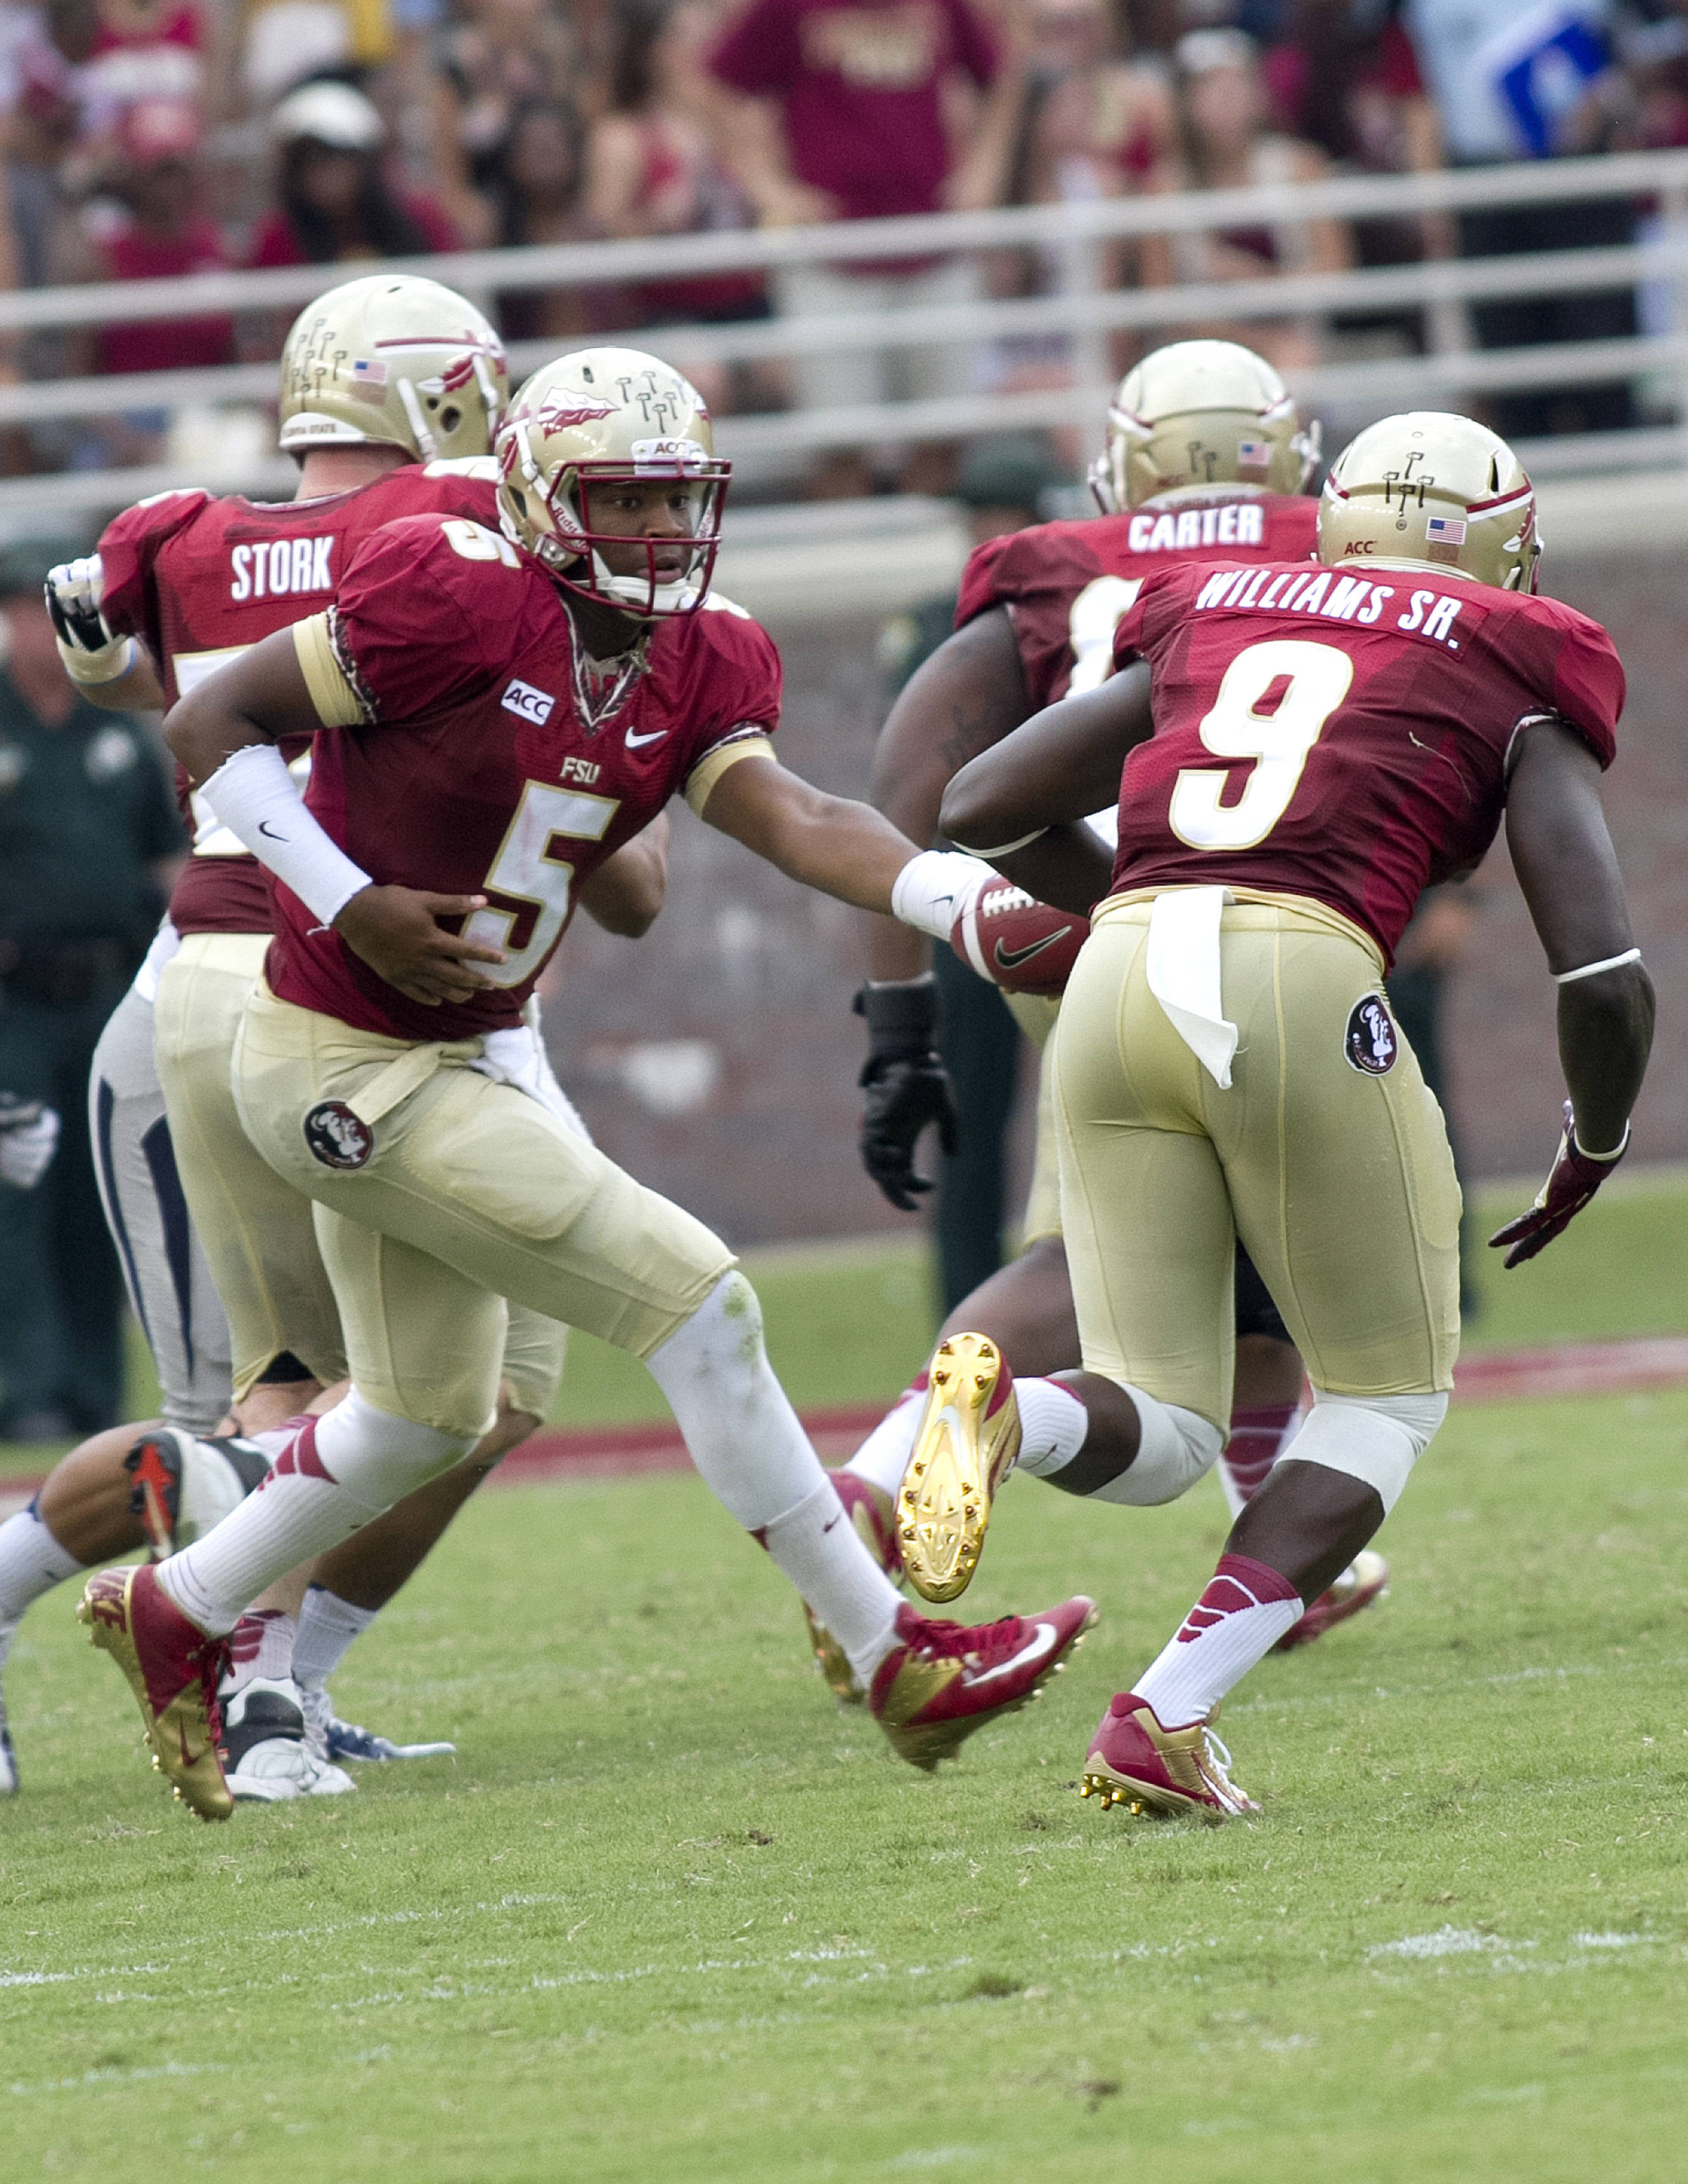 Jameis Winston (5), Karlos Williams, Jr. (9), FSU vs Nevada,  9-14-13, (Photo by Steve Musco)